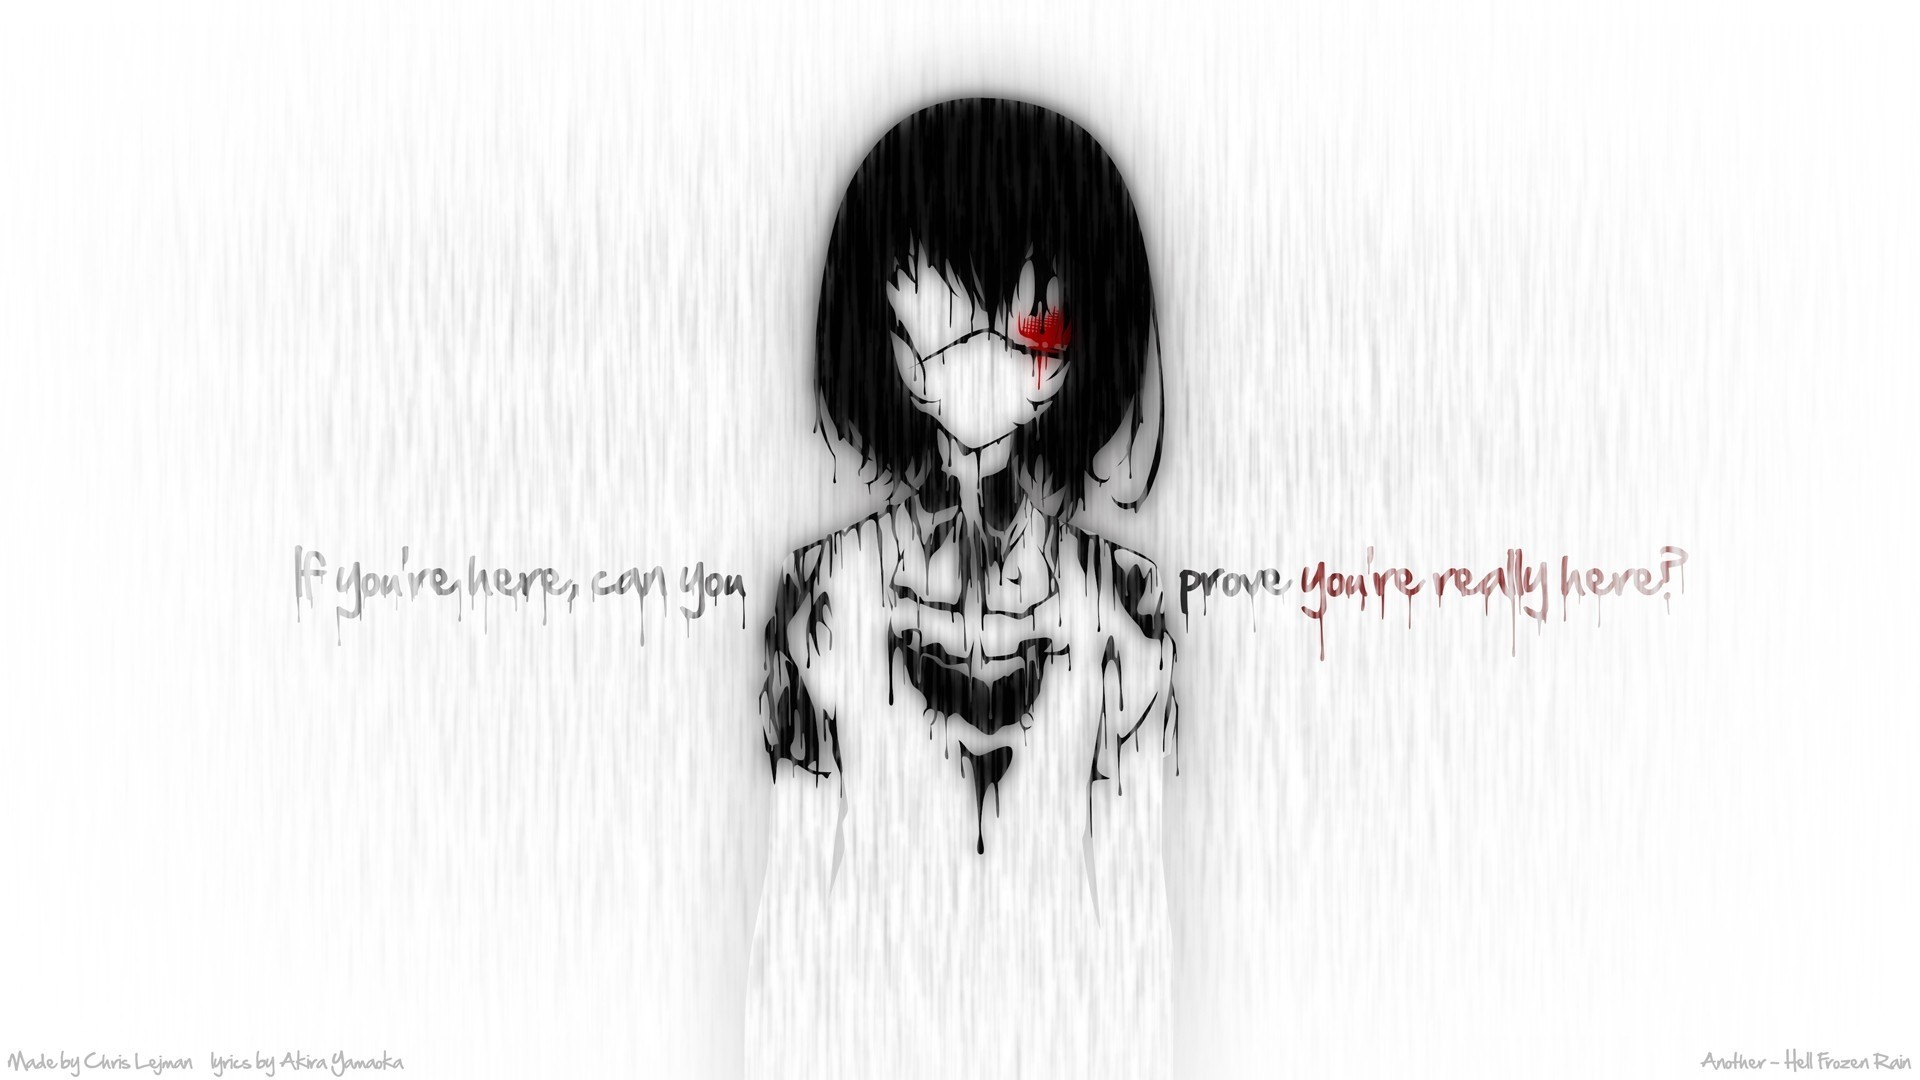 Creepy anime wallpaper 58 images - Another anime hd wallpaper ...